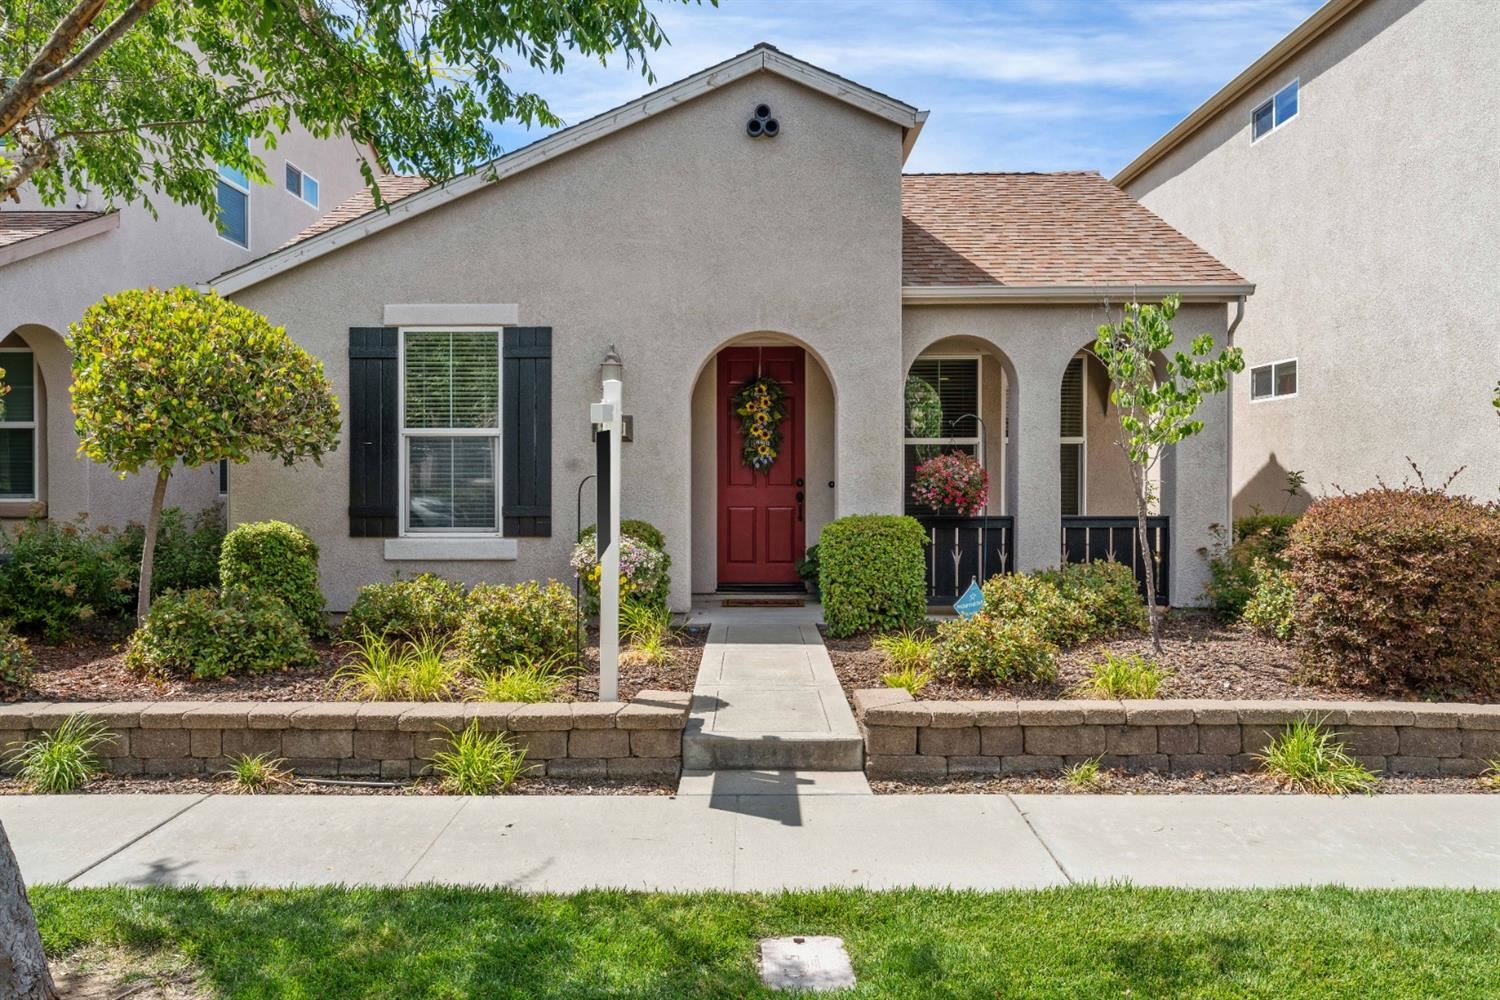 Photo of 3113 Ardley Drive, Roseville, CA 95747 (MLS # 221066202)